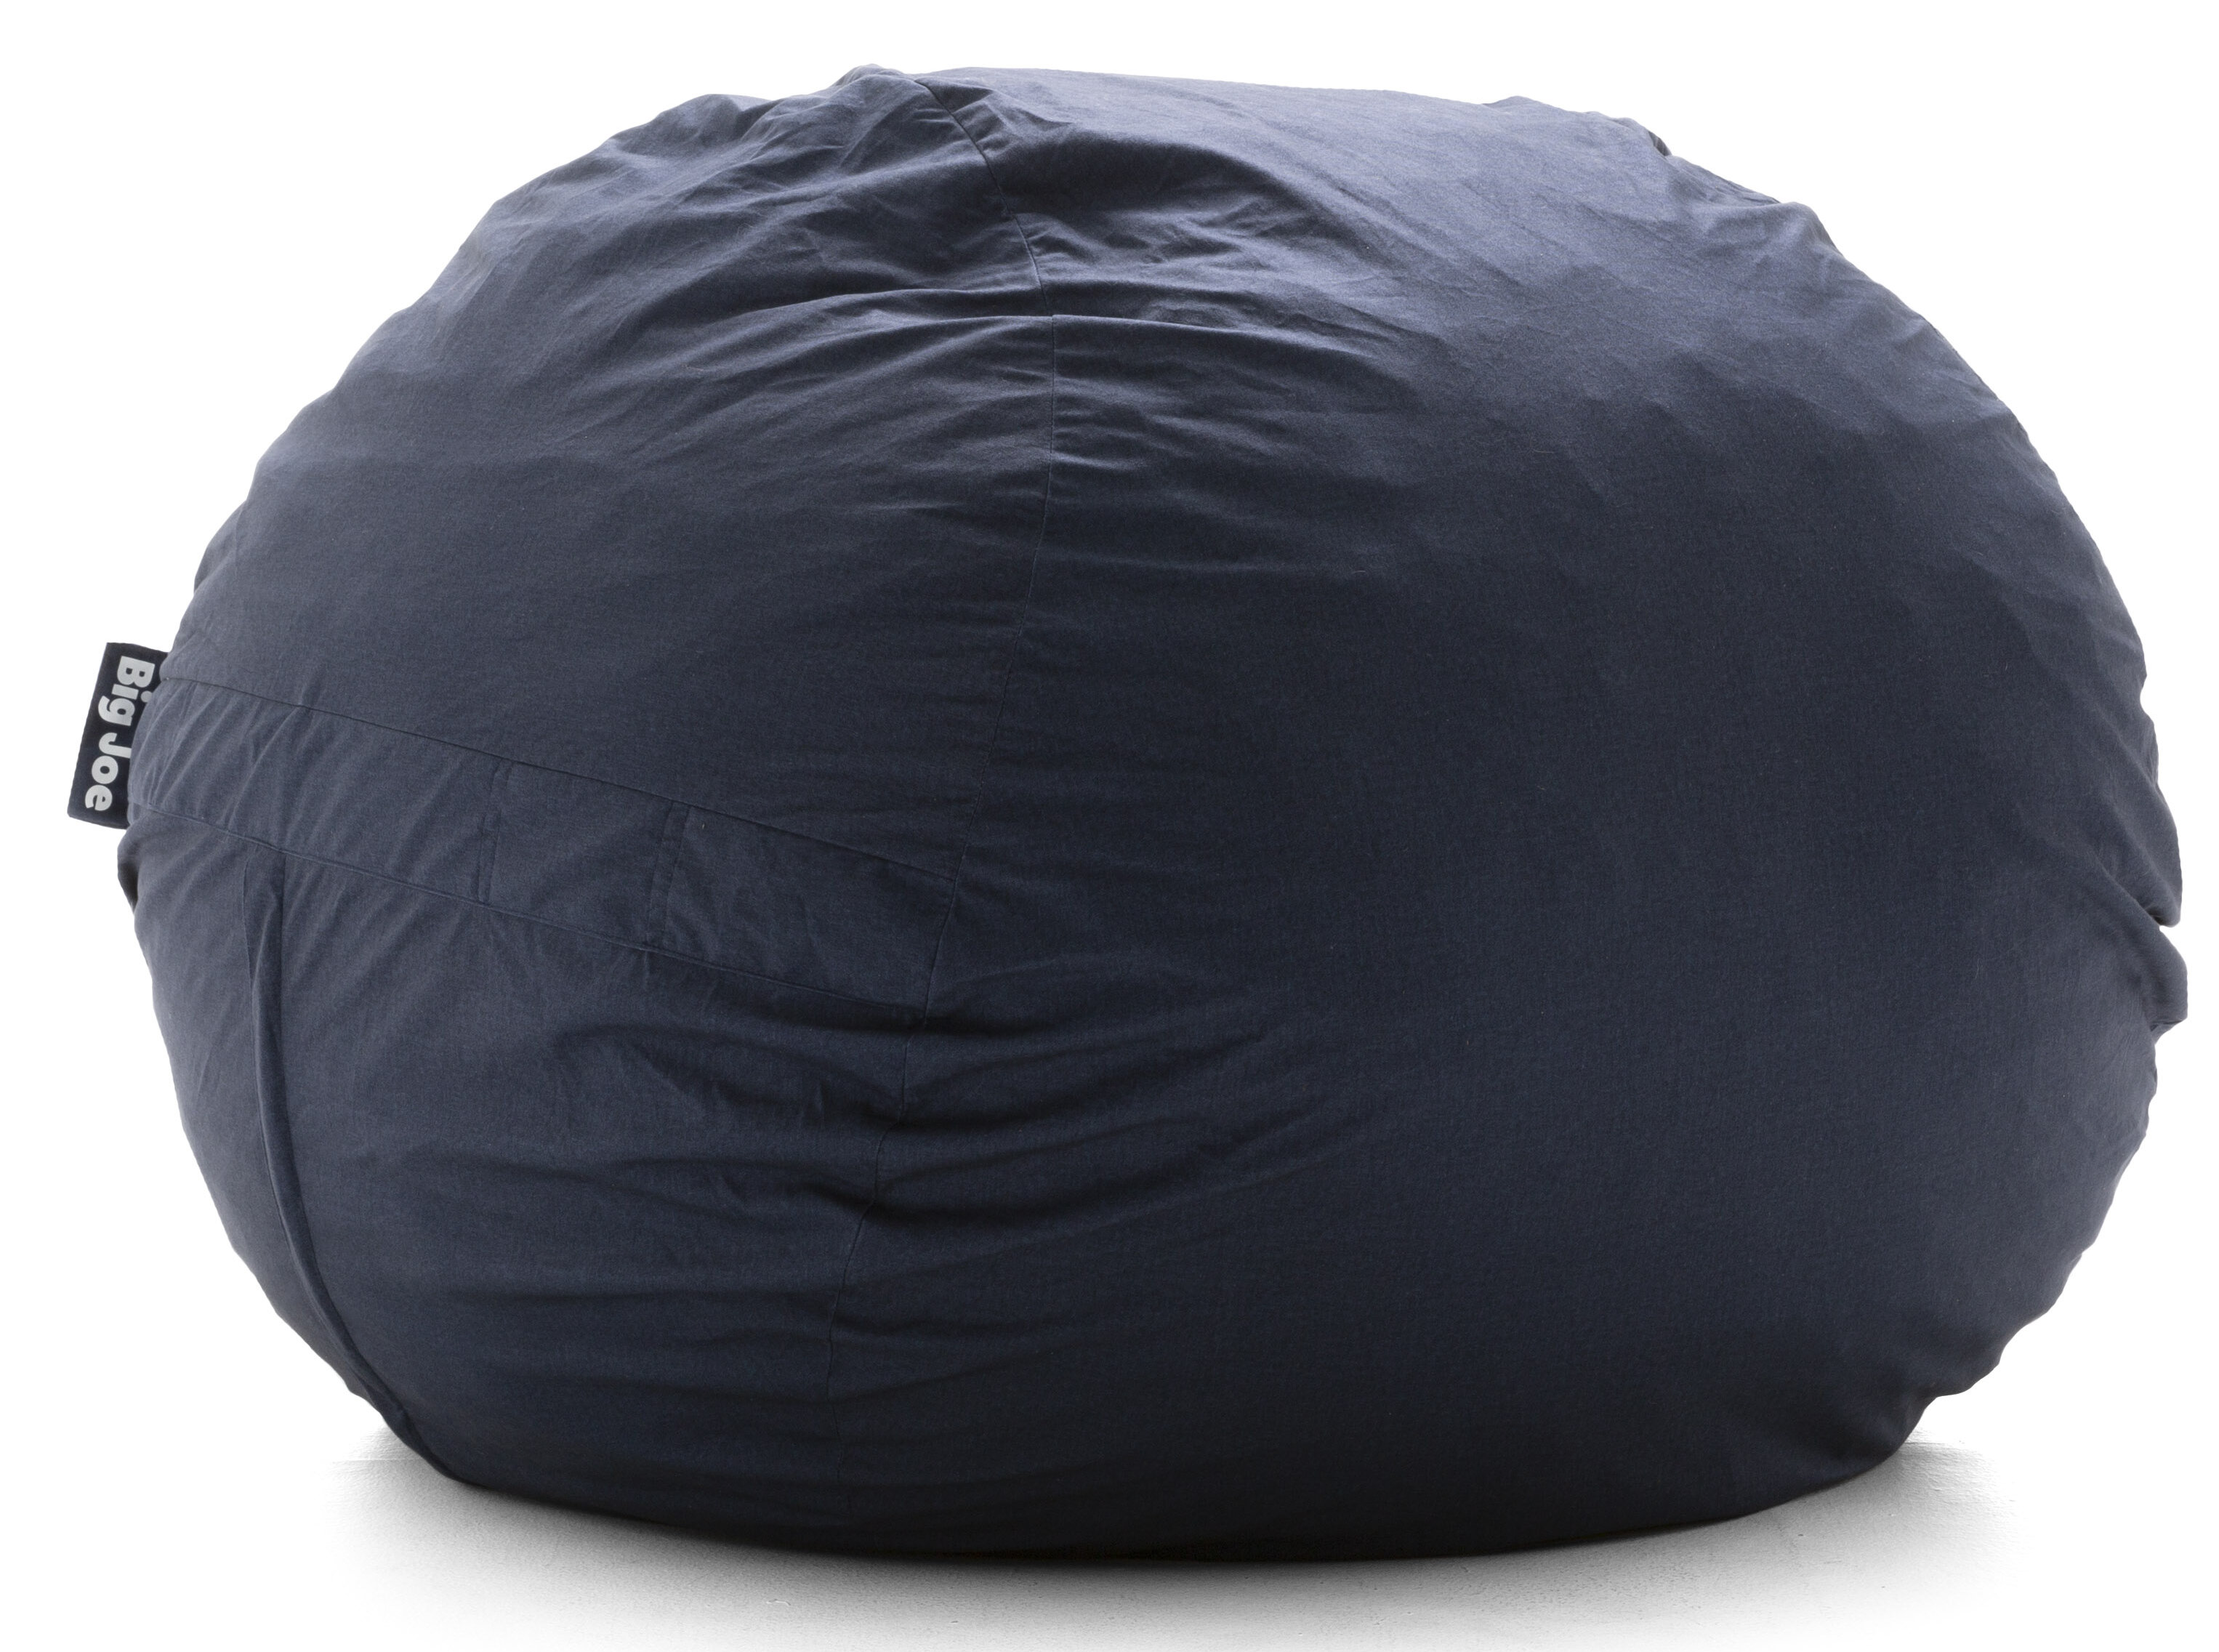 Excellent Big Joe Fuf Bean Bag Chair Ibusinesslaw Wood Chair Design Ideas Ibusinesslaworg